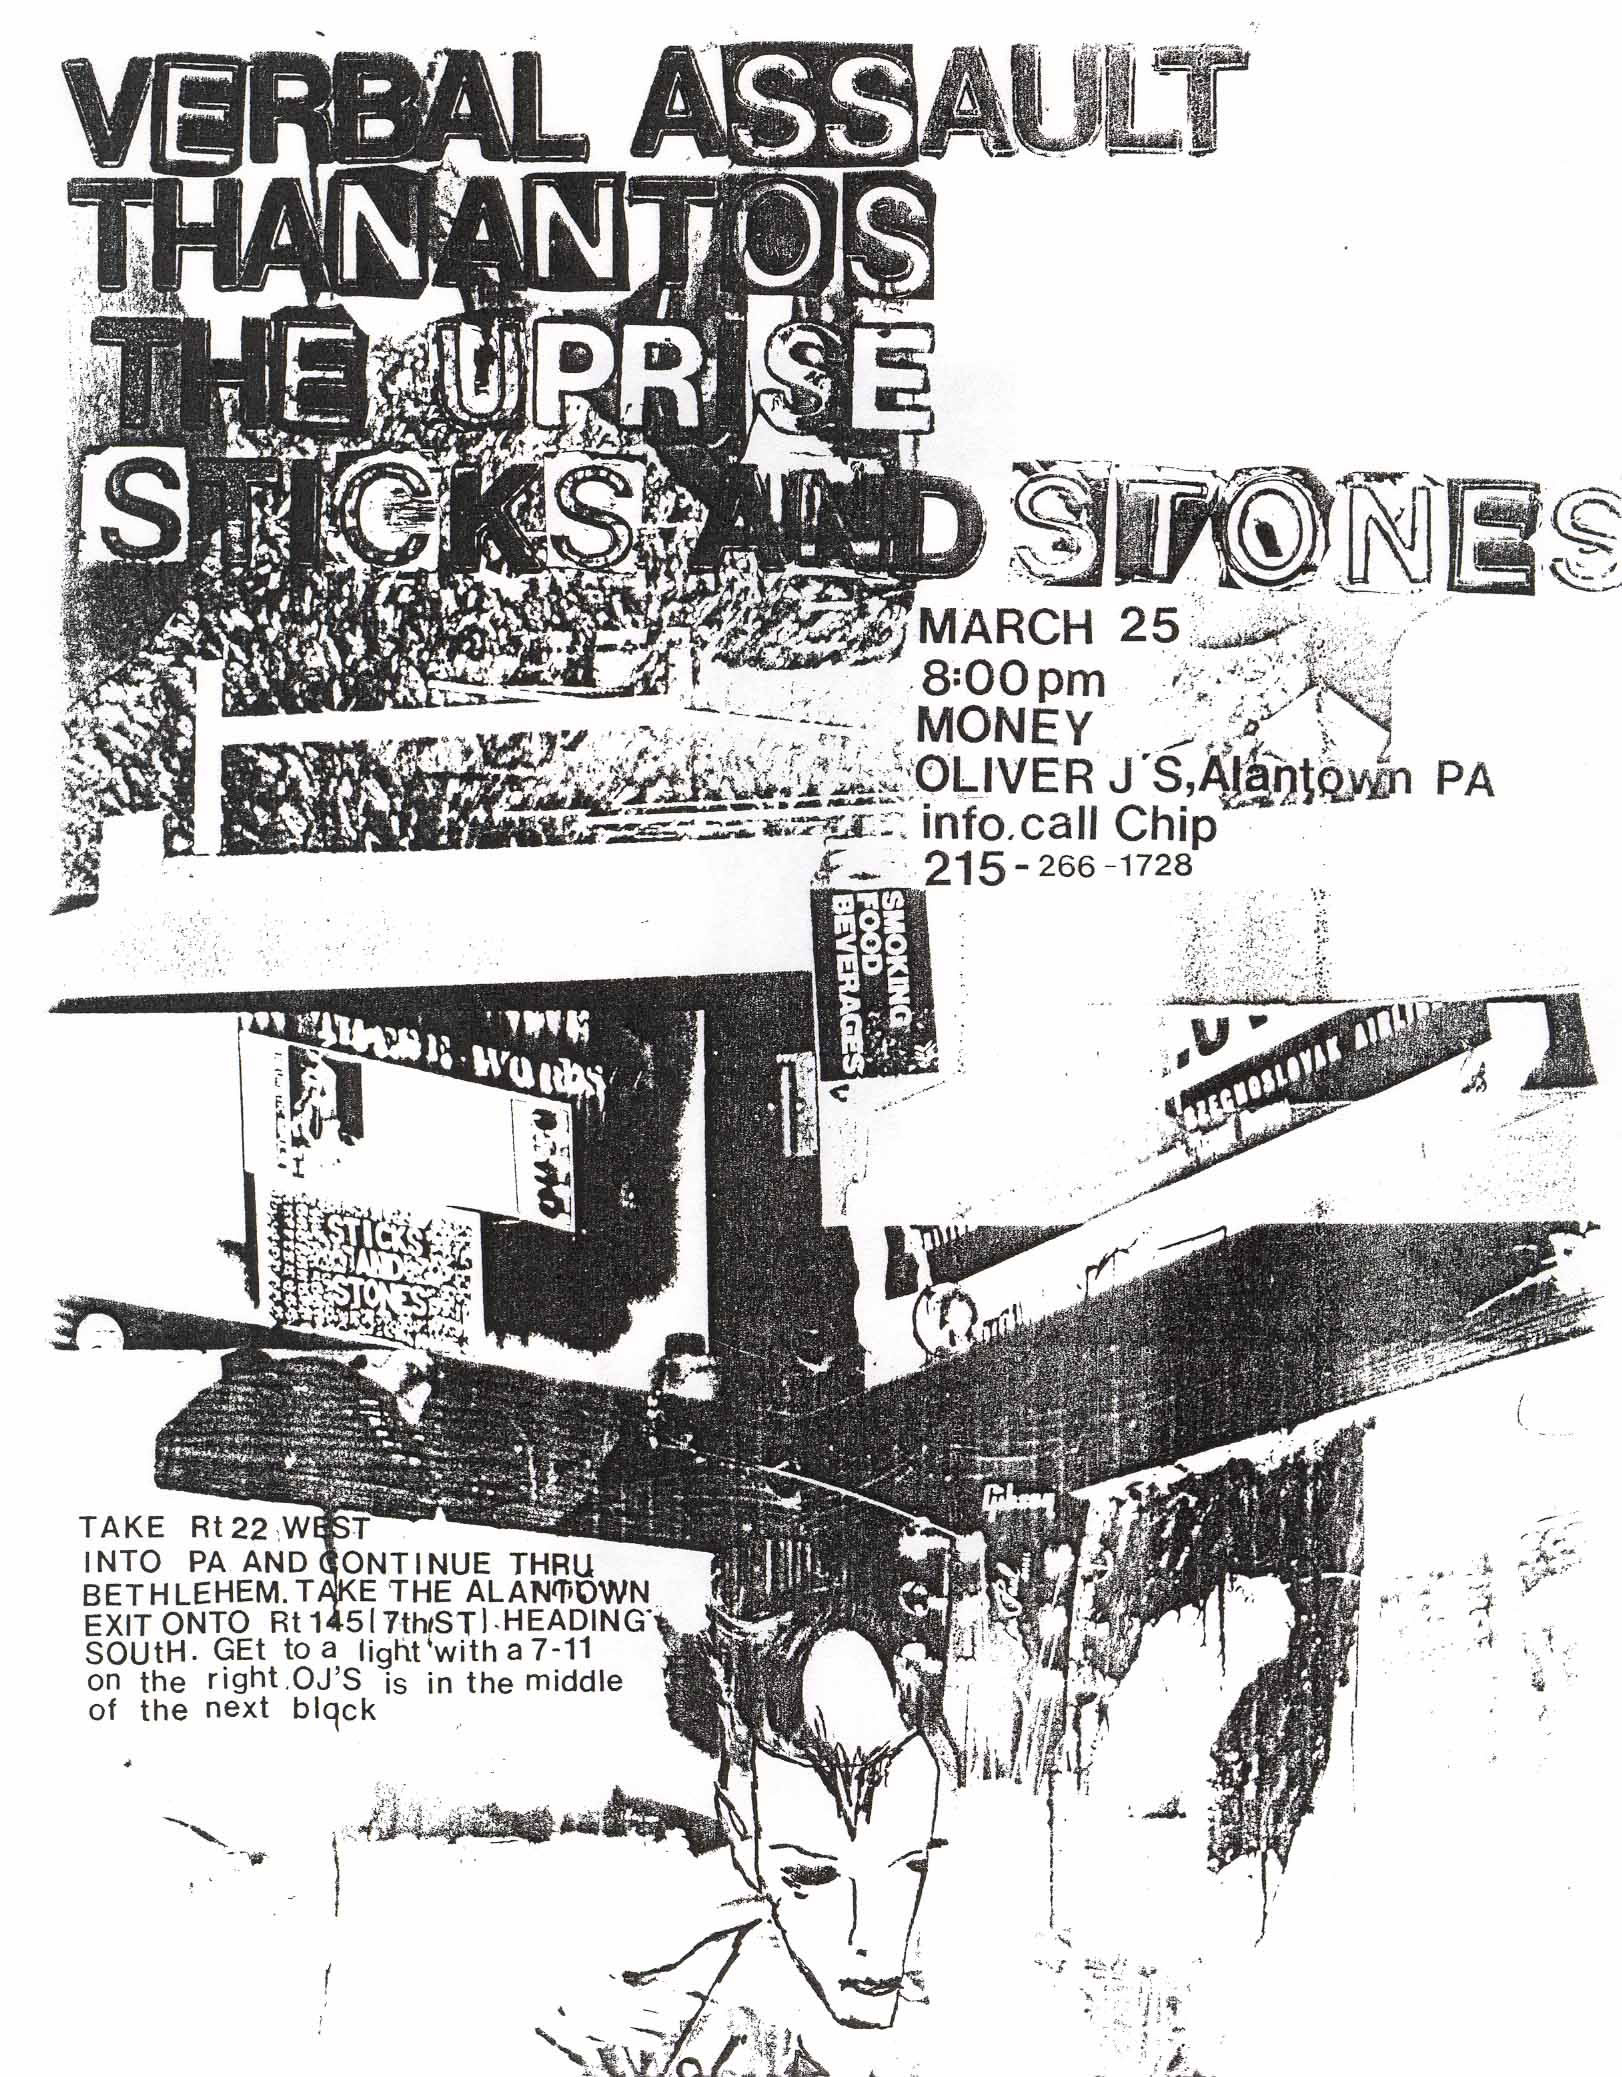 Verbal Assault-Thanatos-The Uprise-Sticks & Stones @ Allentown PA 3-25-UNKNOWN YEAR